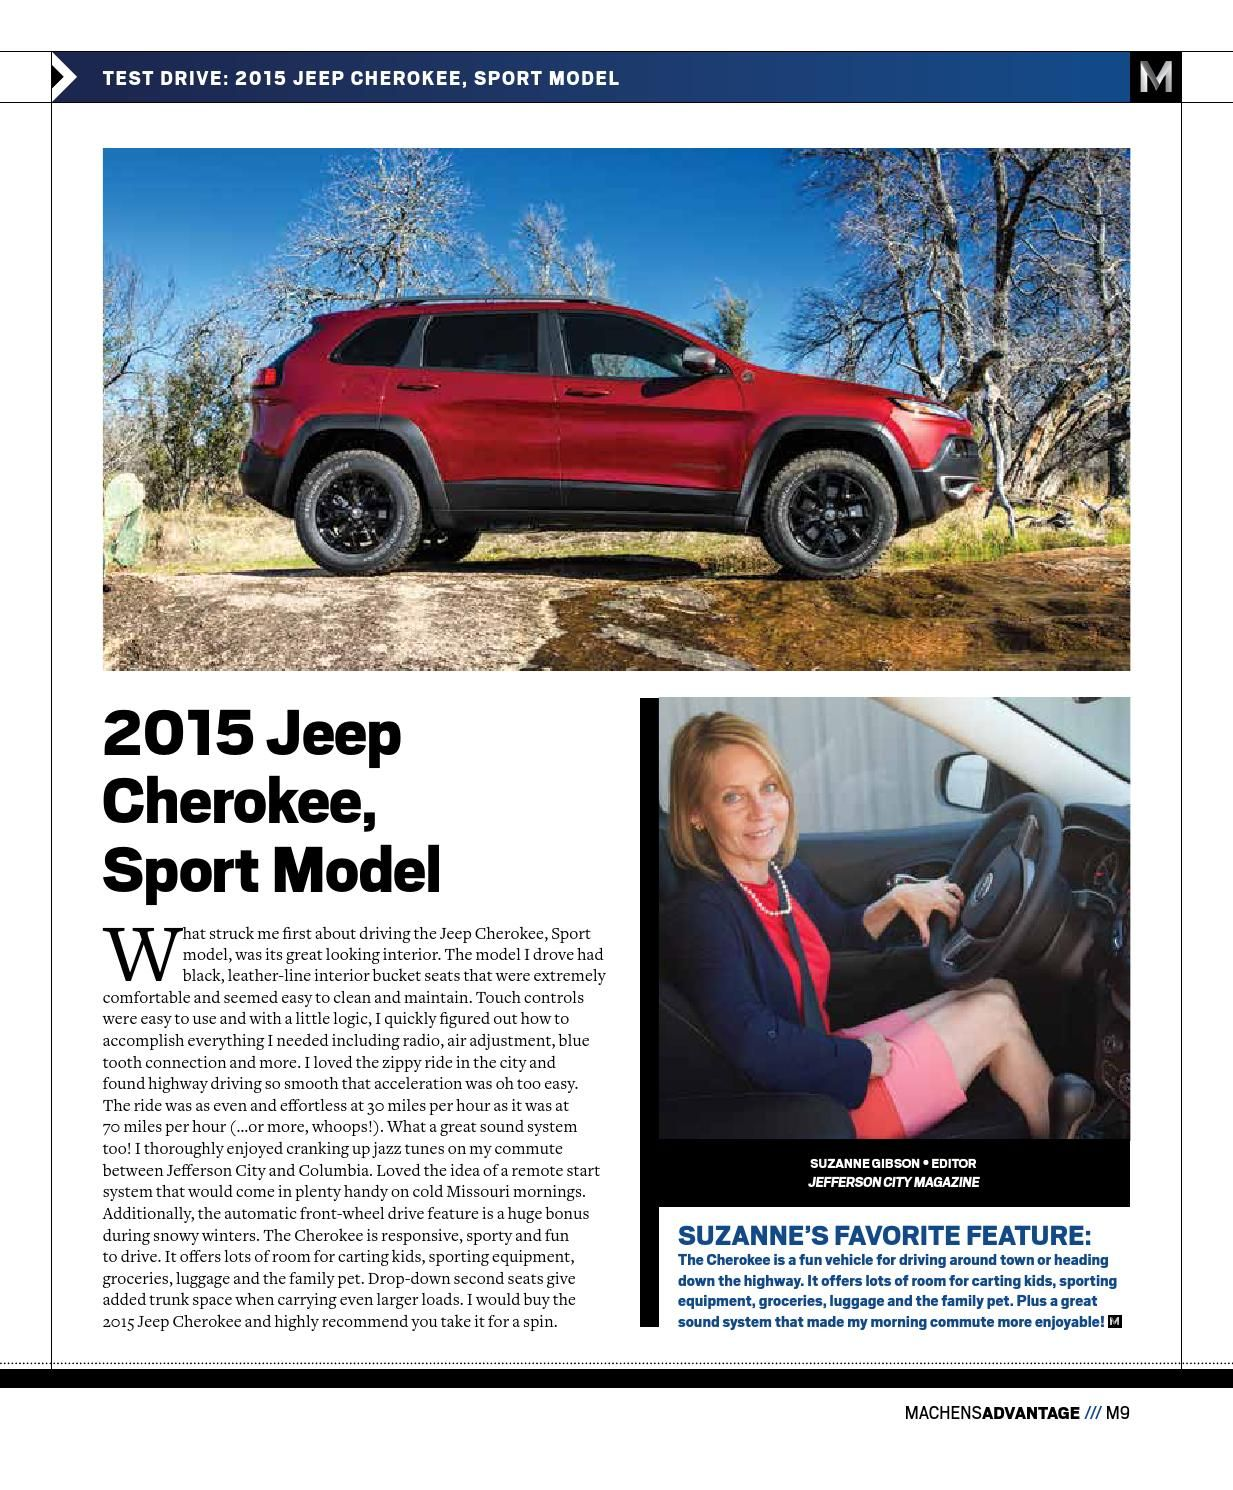 November Machens Advantage With Images Sports Models Jeep Cherokee Sport Jeep Cherokee